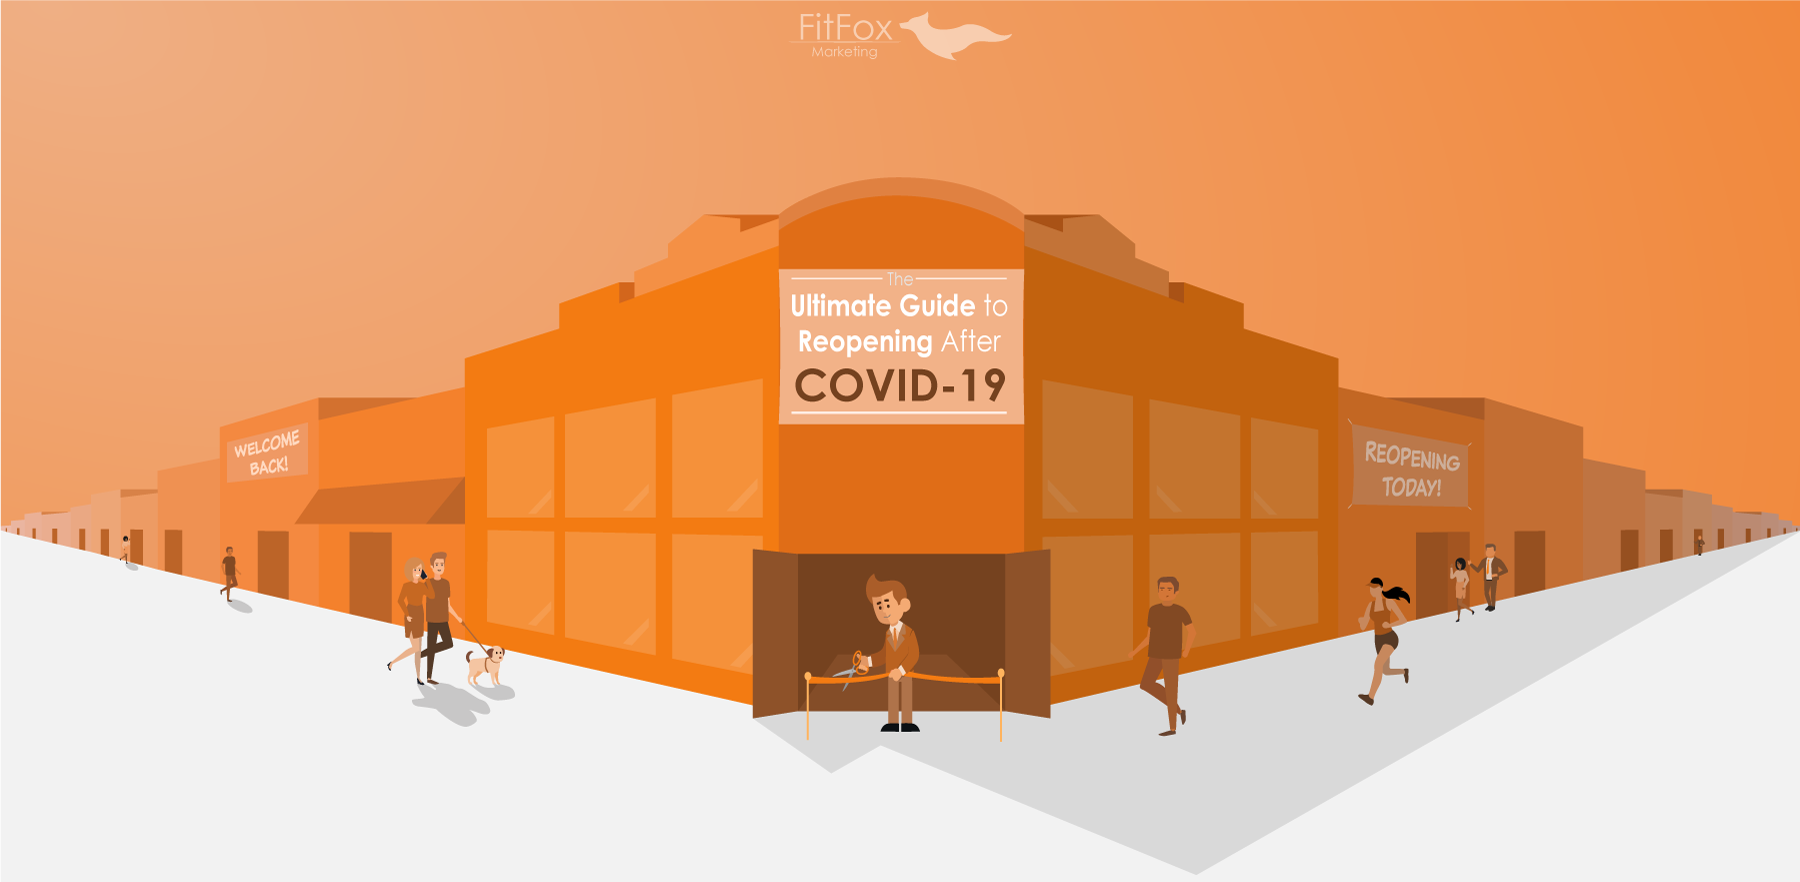 Guide to reopening your business after COVID-19